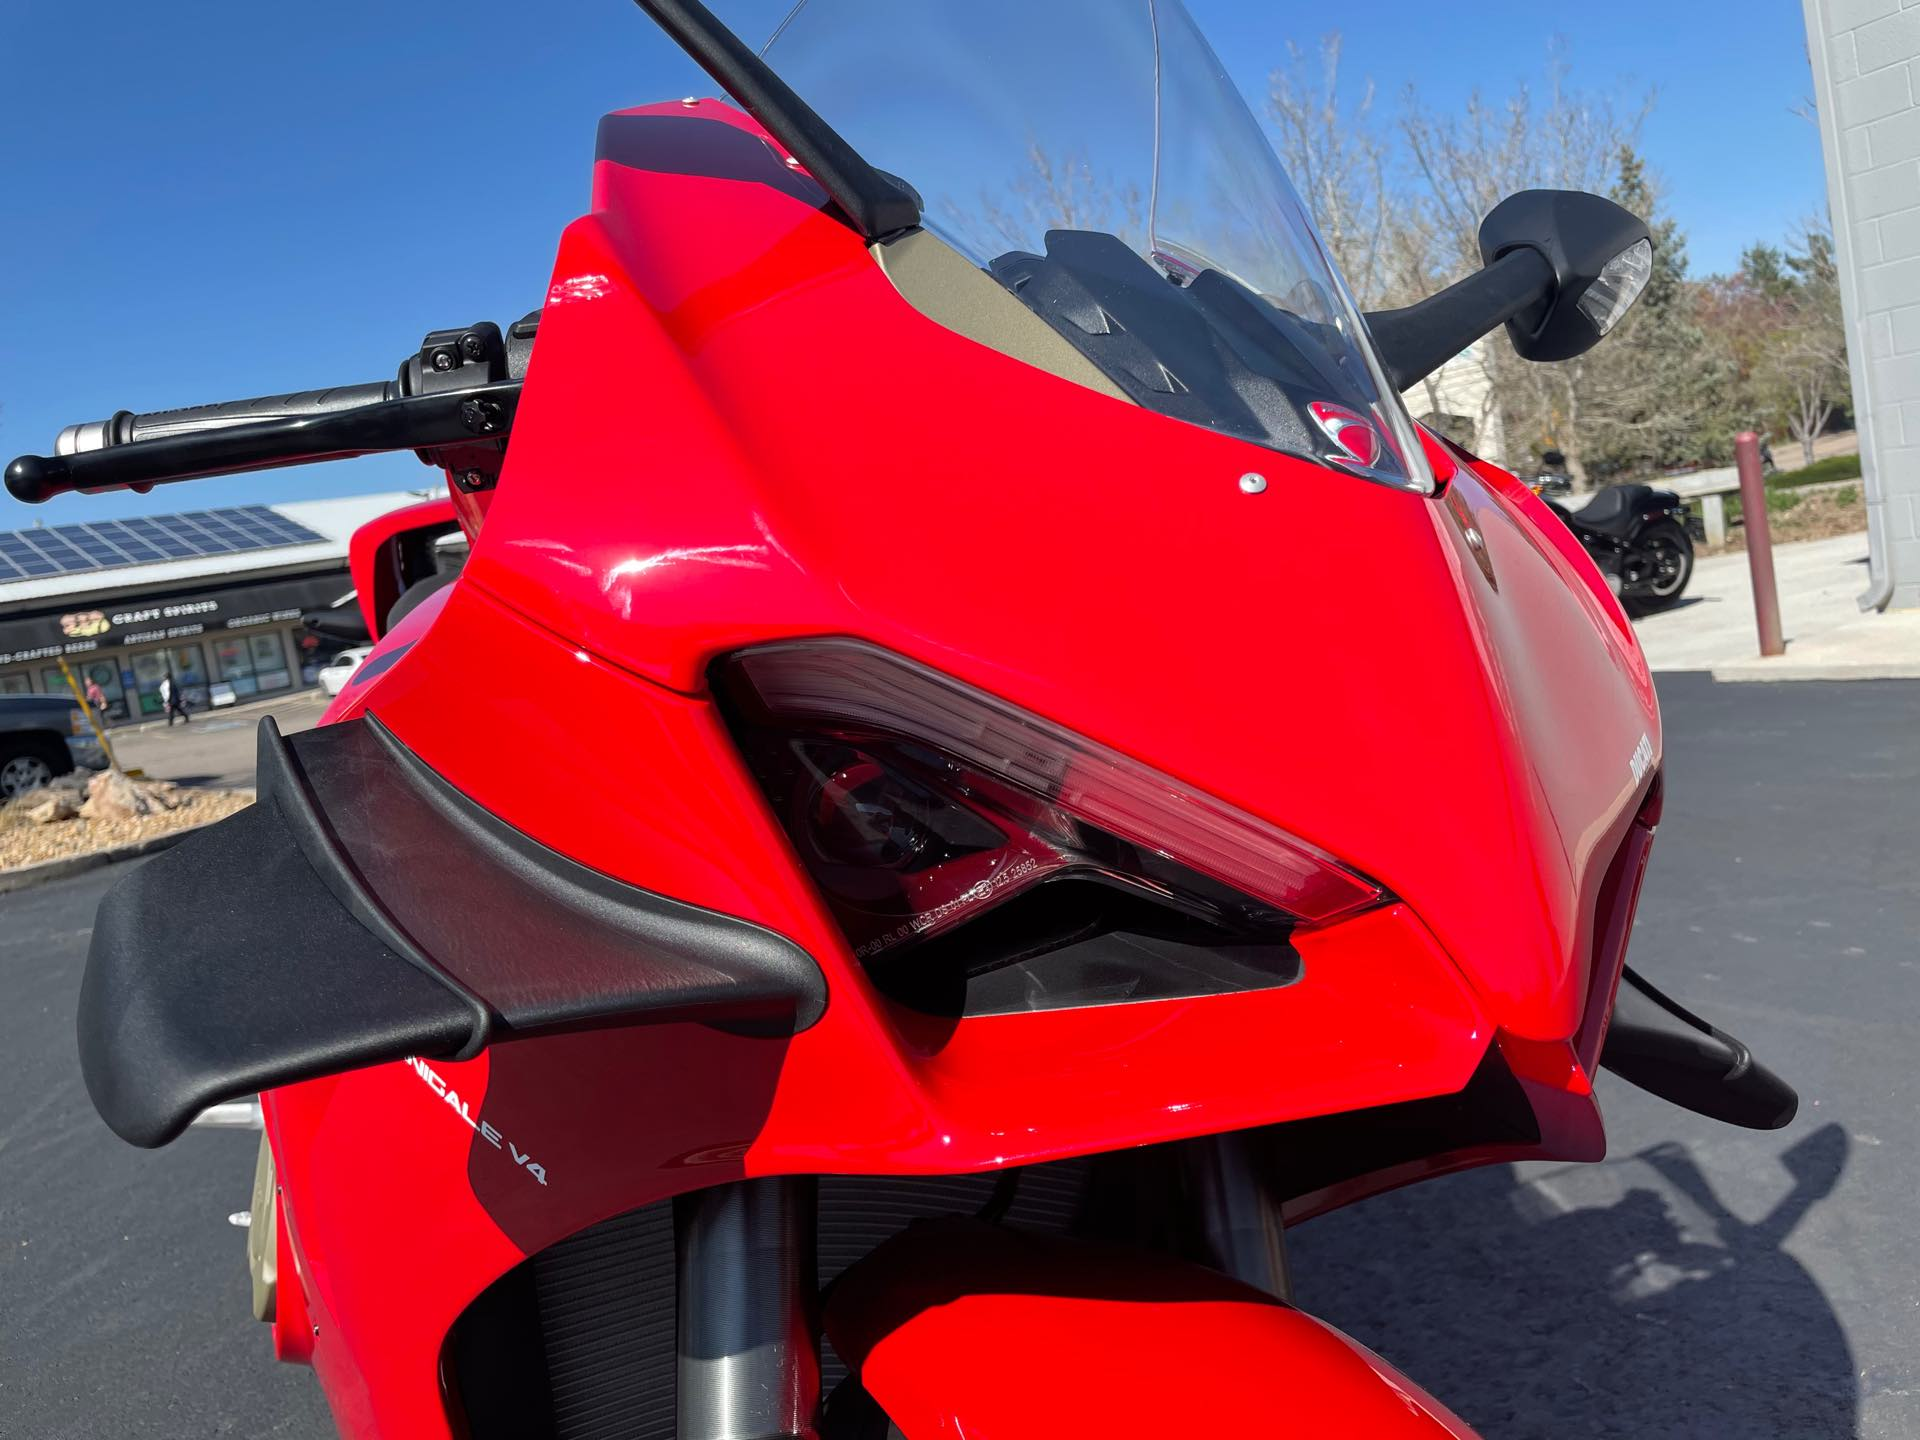 2021 Ducati Panigale V4 at Aces Motorcycles - Fort Collins